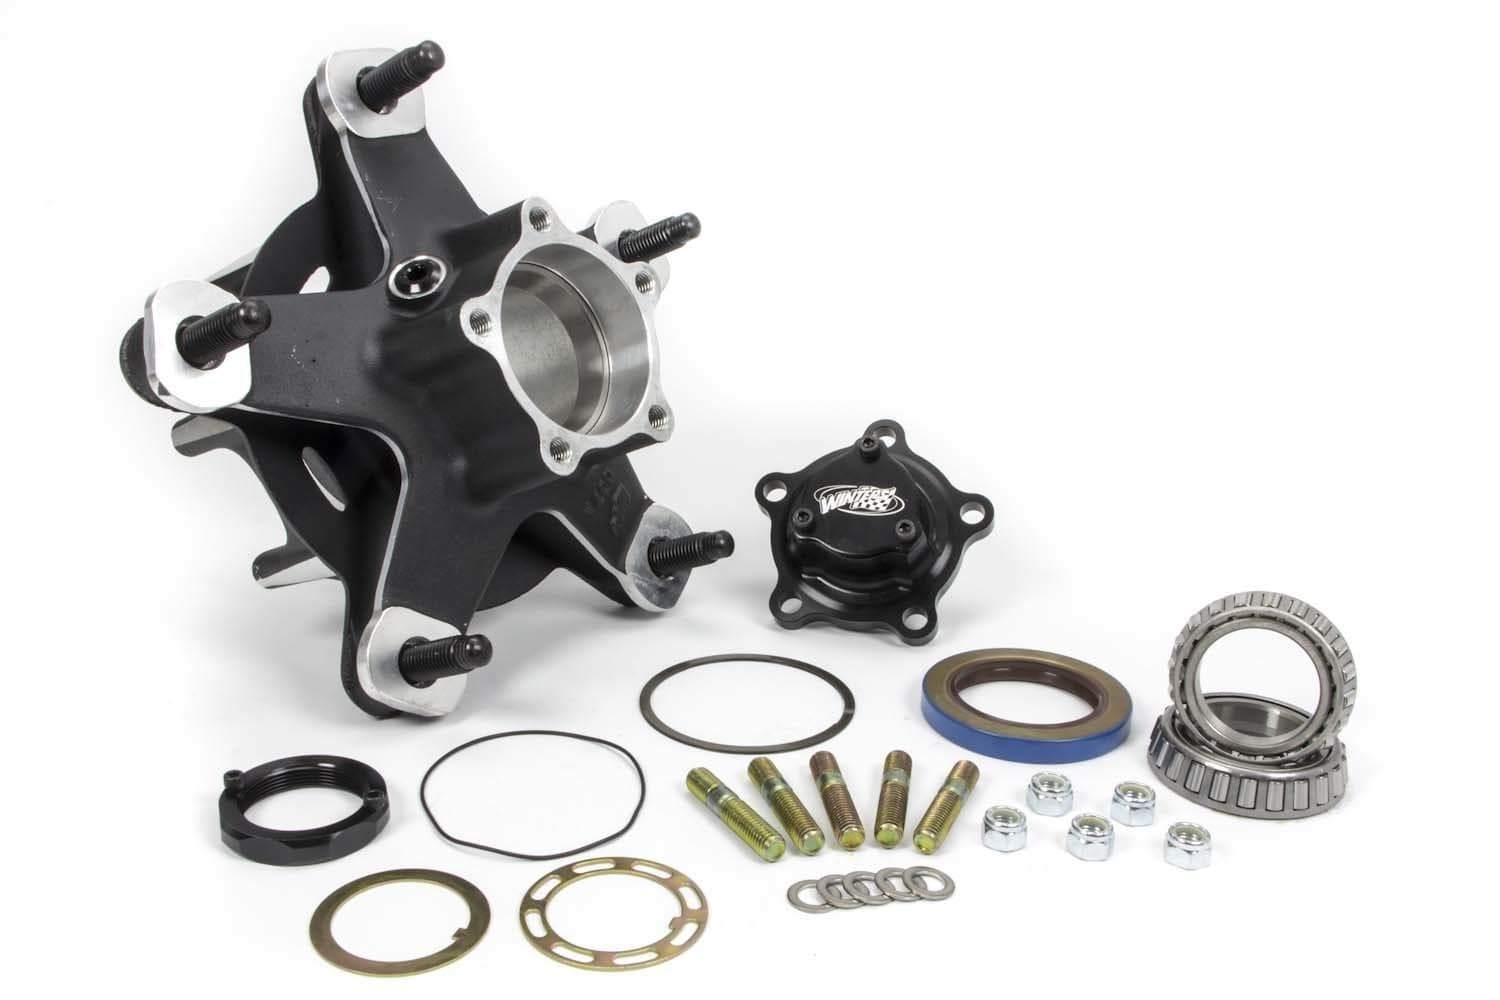 WINTERS ALUMINUM  with Angular Contact Bearings (ACB BALL BEARINGS)-OIL FILLED WIDE 5 HUBS-FRONT